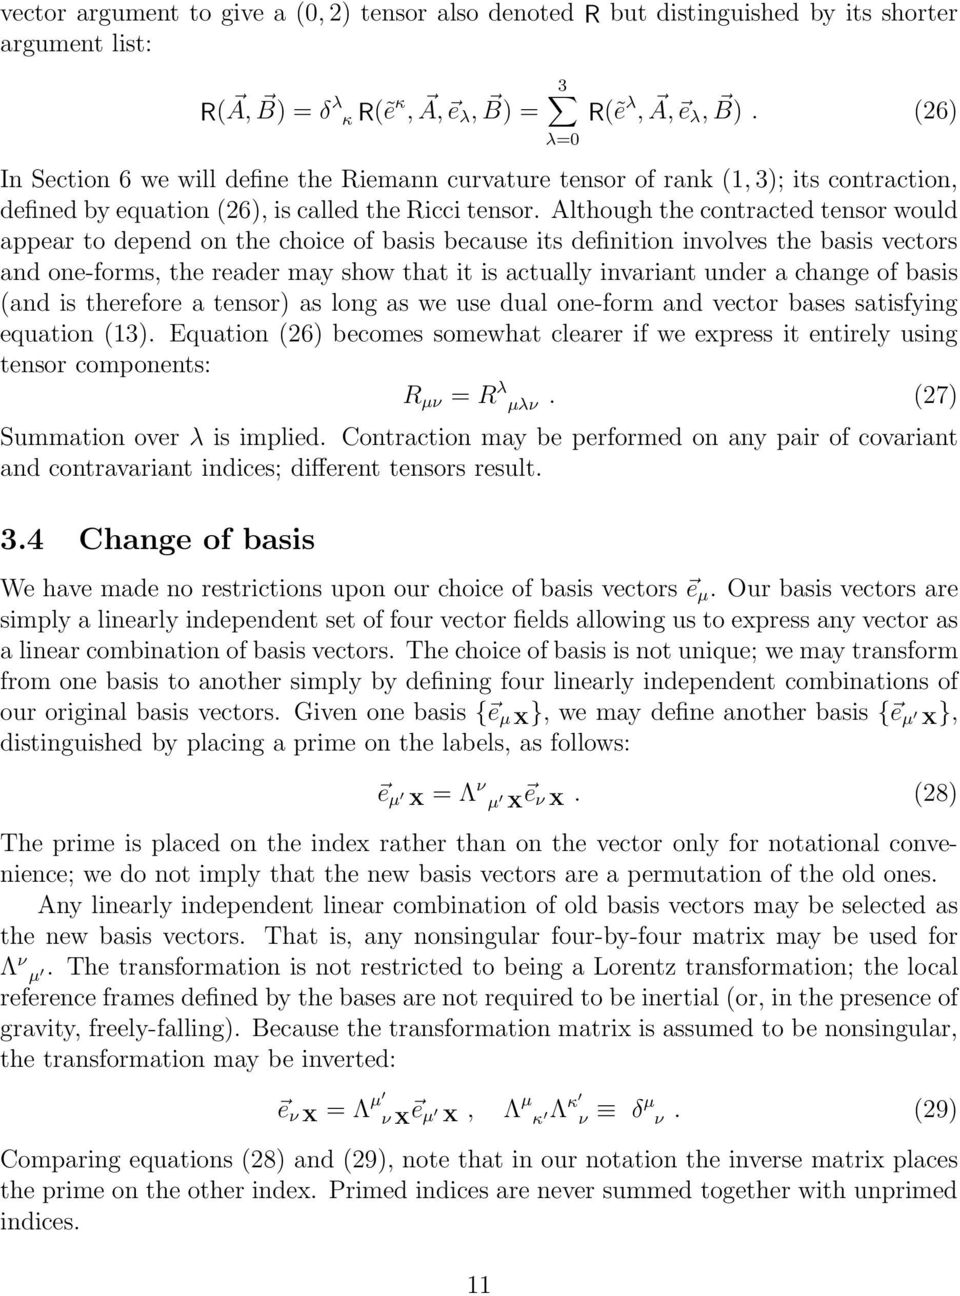 Although the contracted tensor would appear to depend on the choice of basis because its definition involves the basis vectors and one-forms, the reader may show that it is actually invariant under a